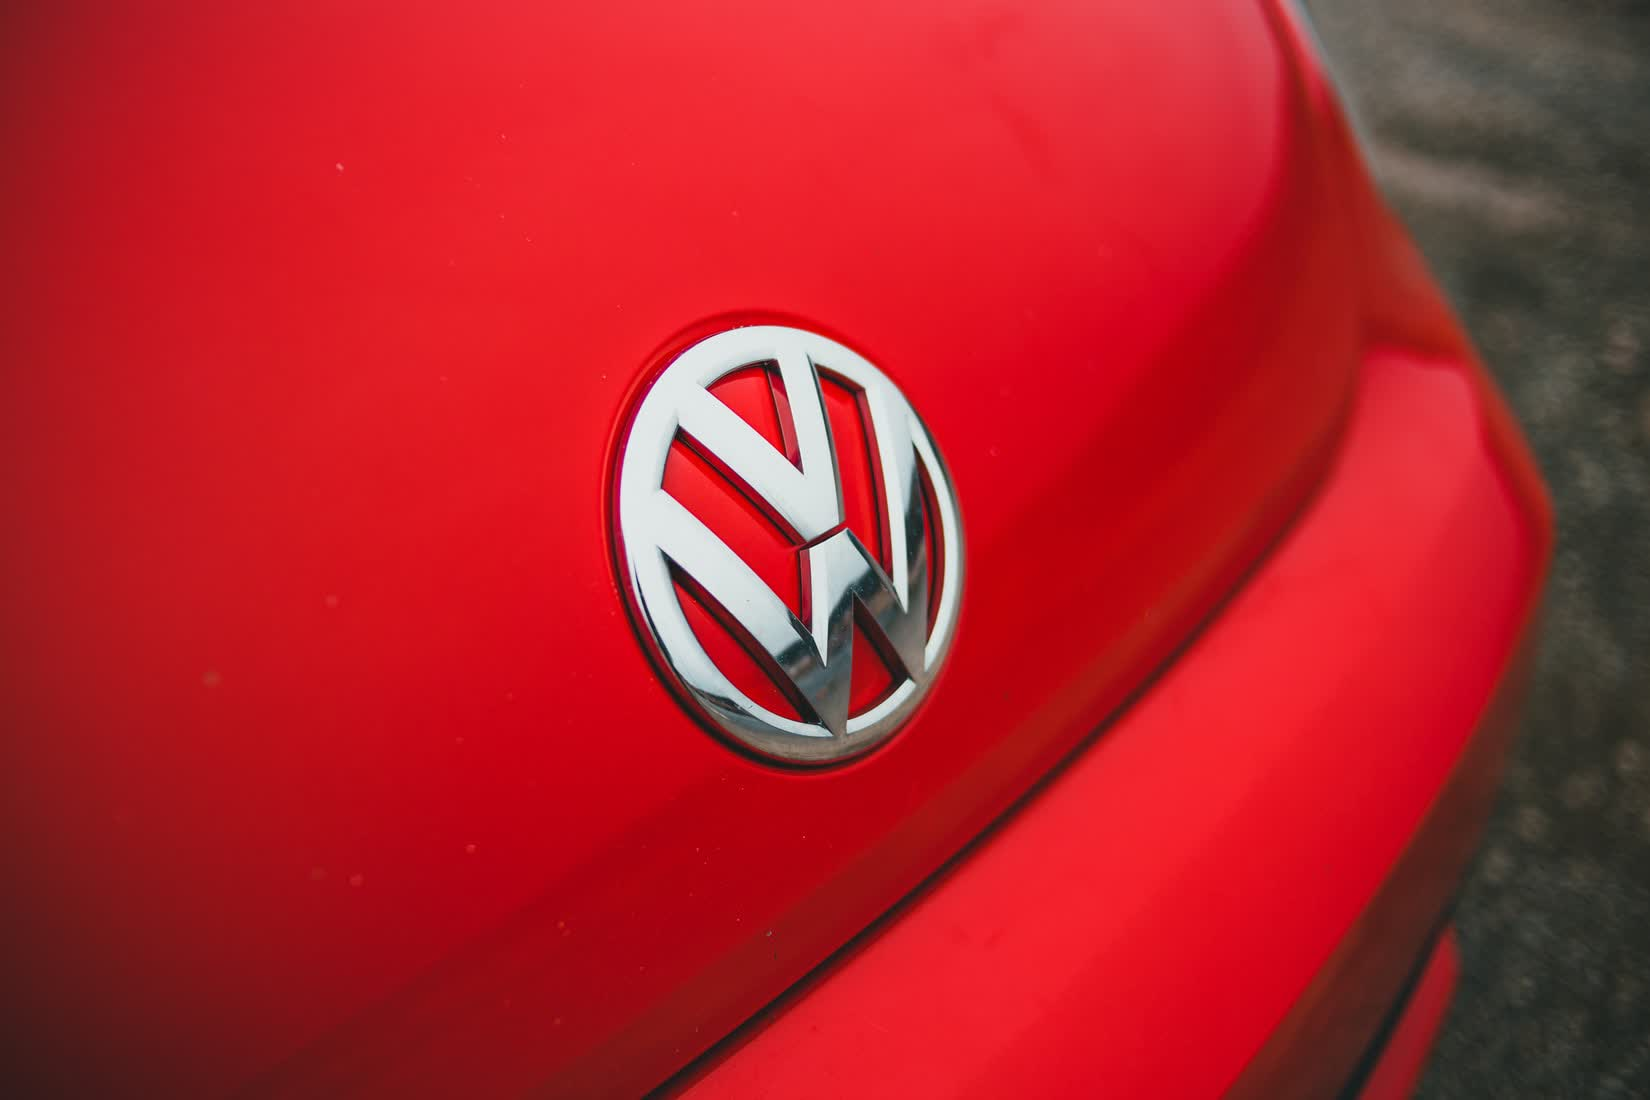 Over 3.3M VW customers have had their personal details exposed